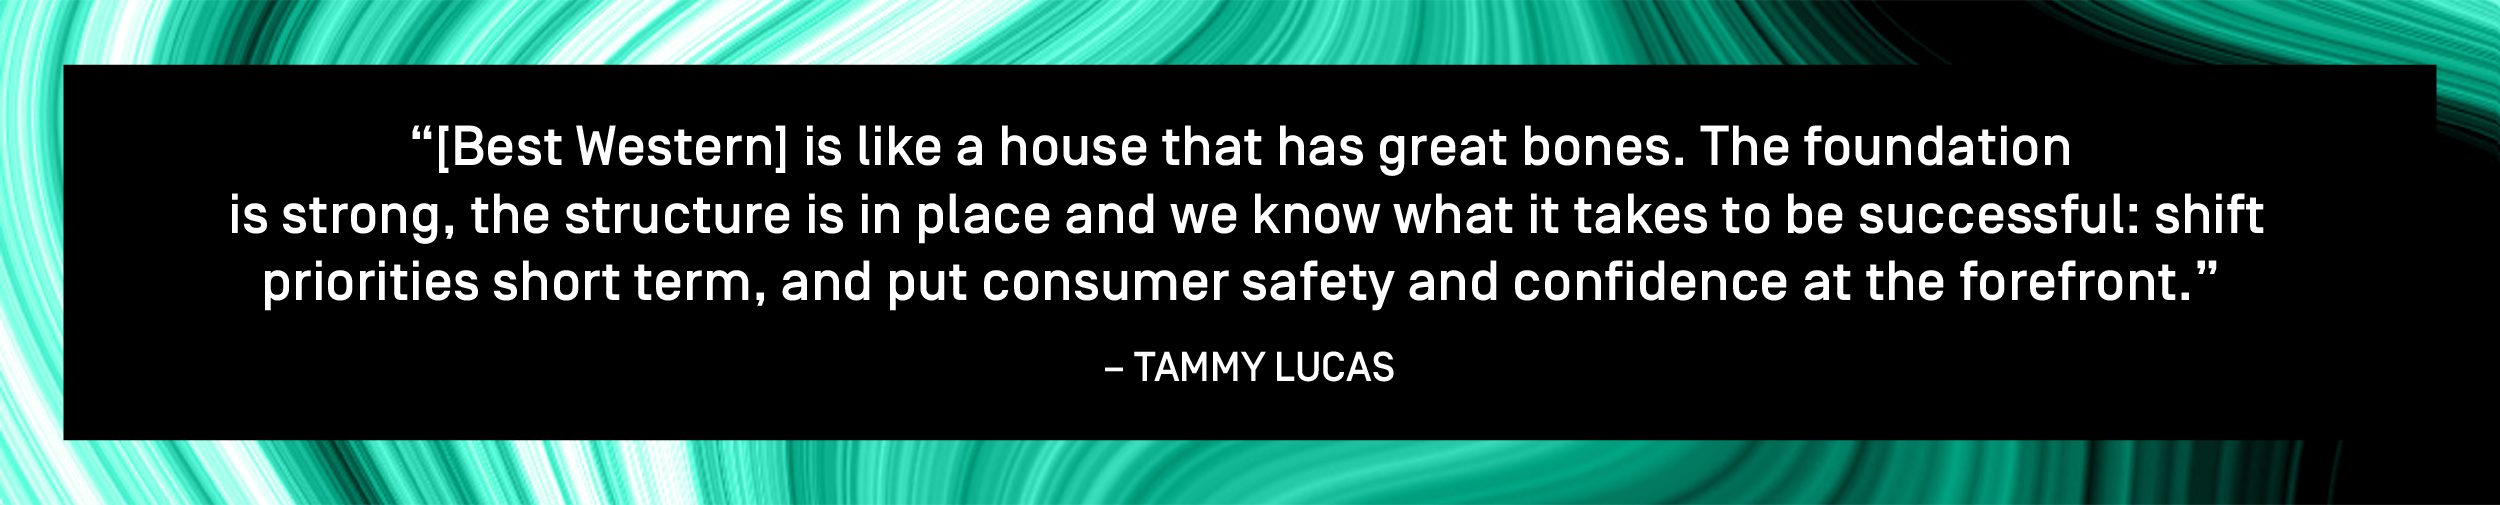 """[Best Western] is like a house that has great bones. The foundation is strong, the structure is in place and we know what it takes to be successful: shift priorities short term, and put consumer safety and confidence at the forefront."" – Tammy Lucas"